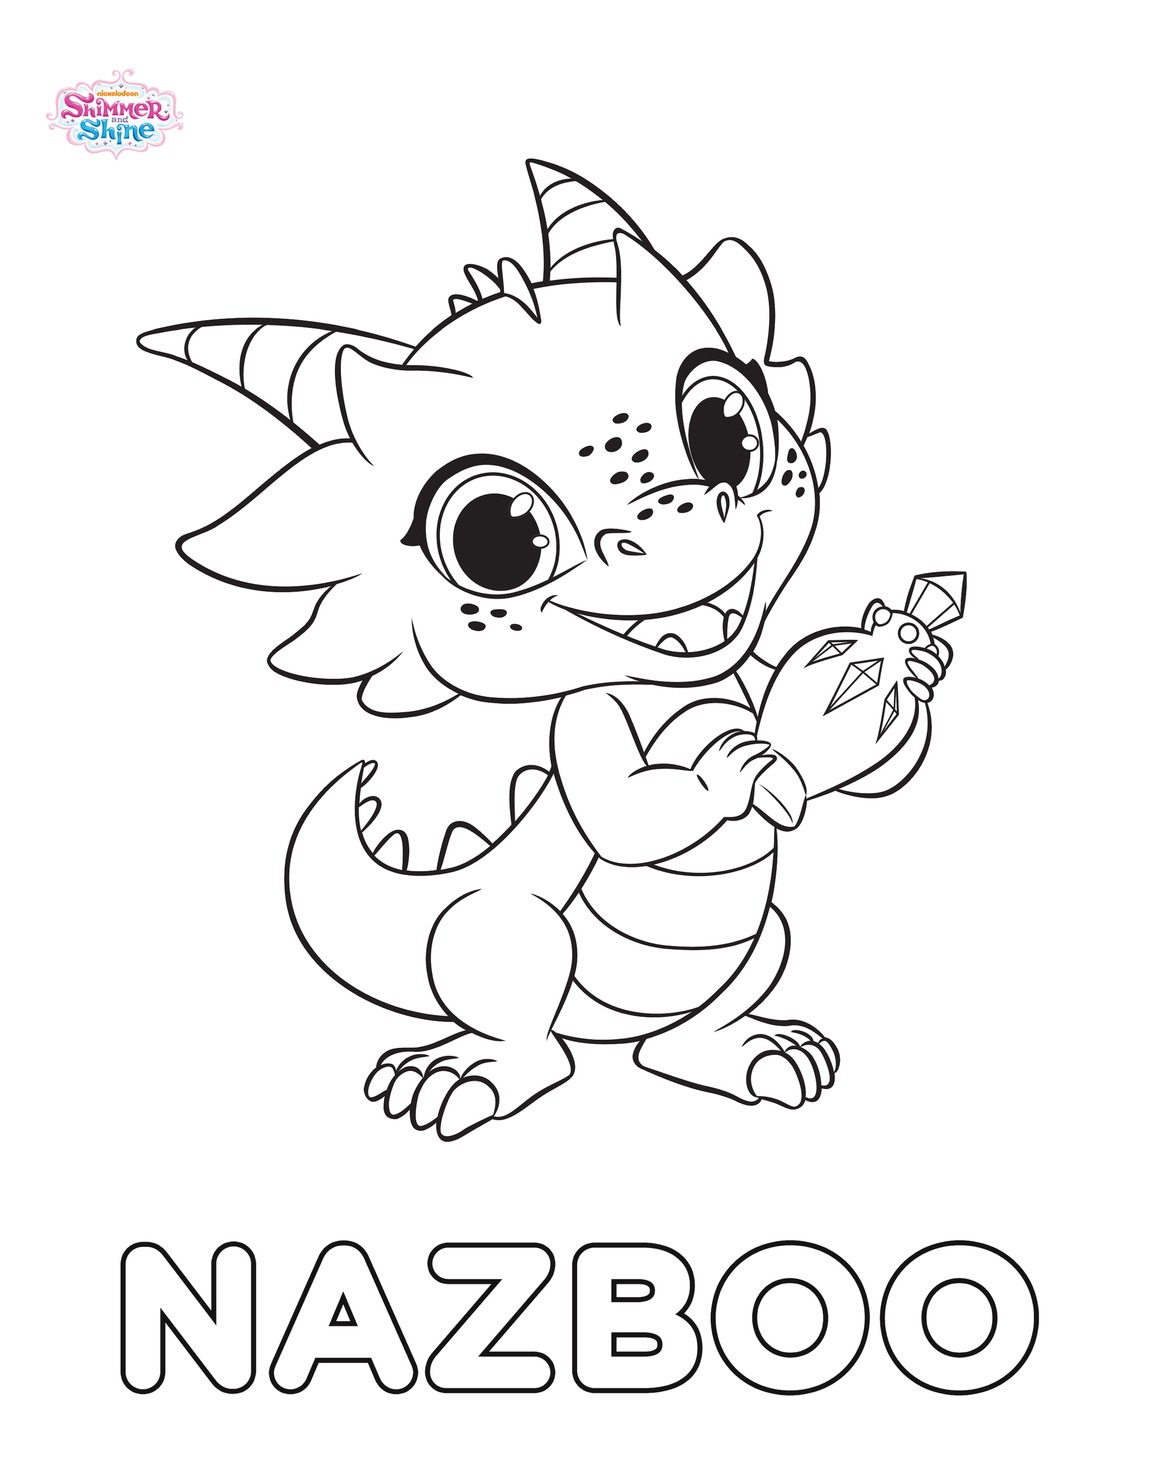 25 Elegant Hello Neighbor Coloring Pages Gallery